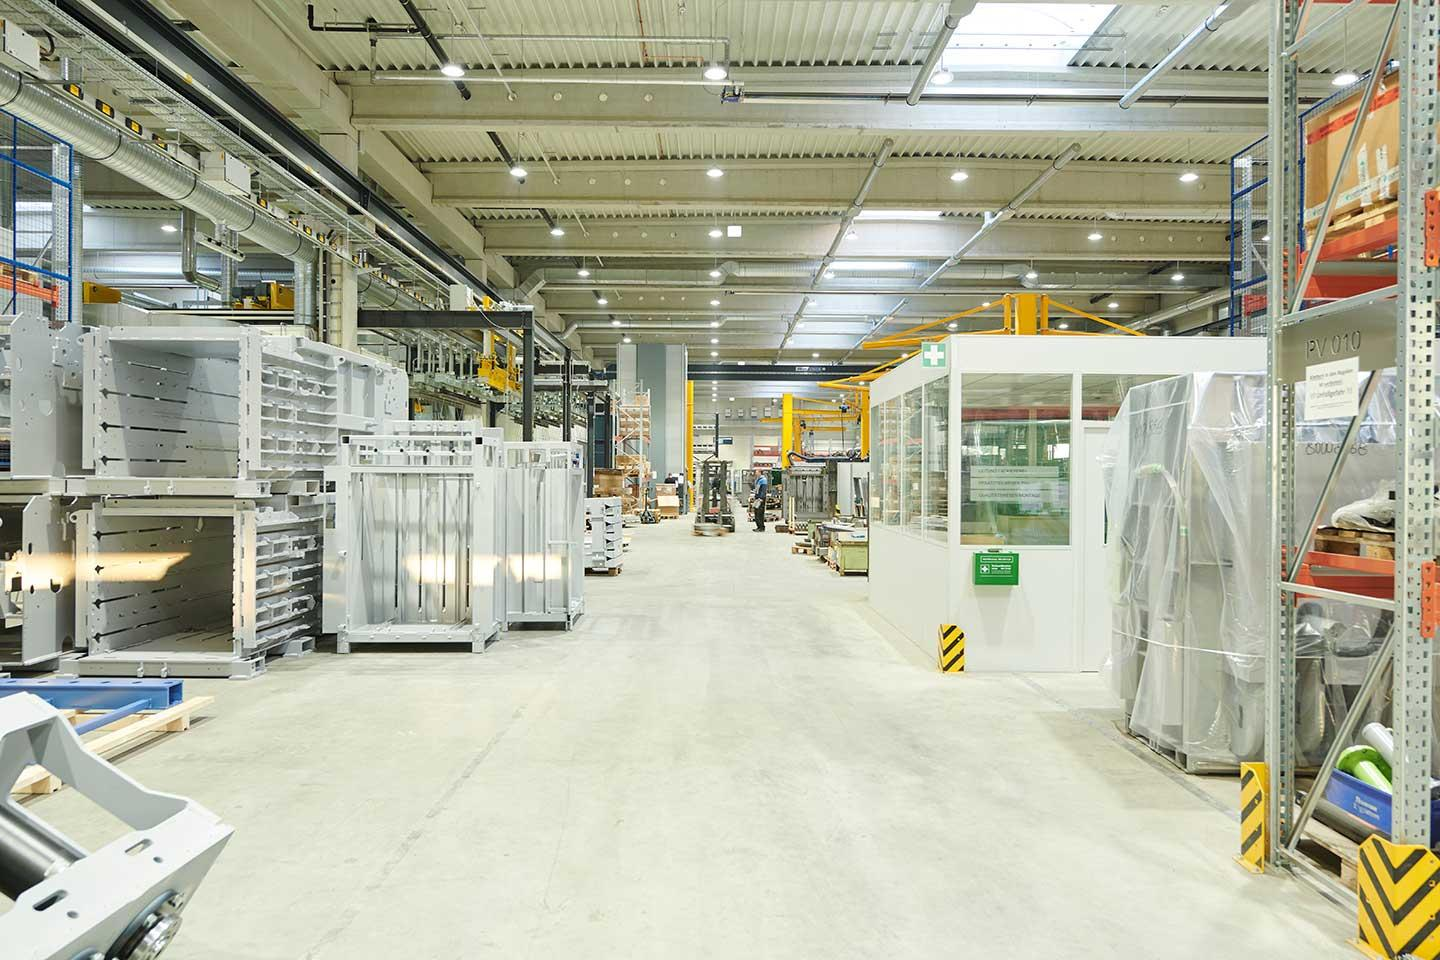 INDU BAY offers a reliable, long life, low maintenance industry lighting solution for Maschinenfabrik Bermatingen